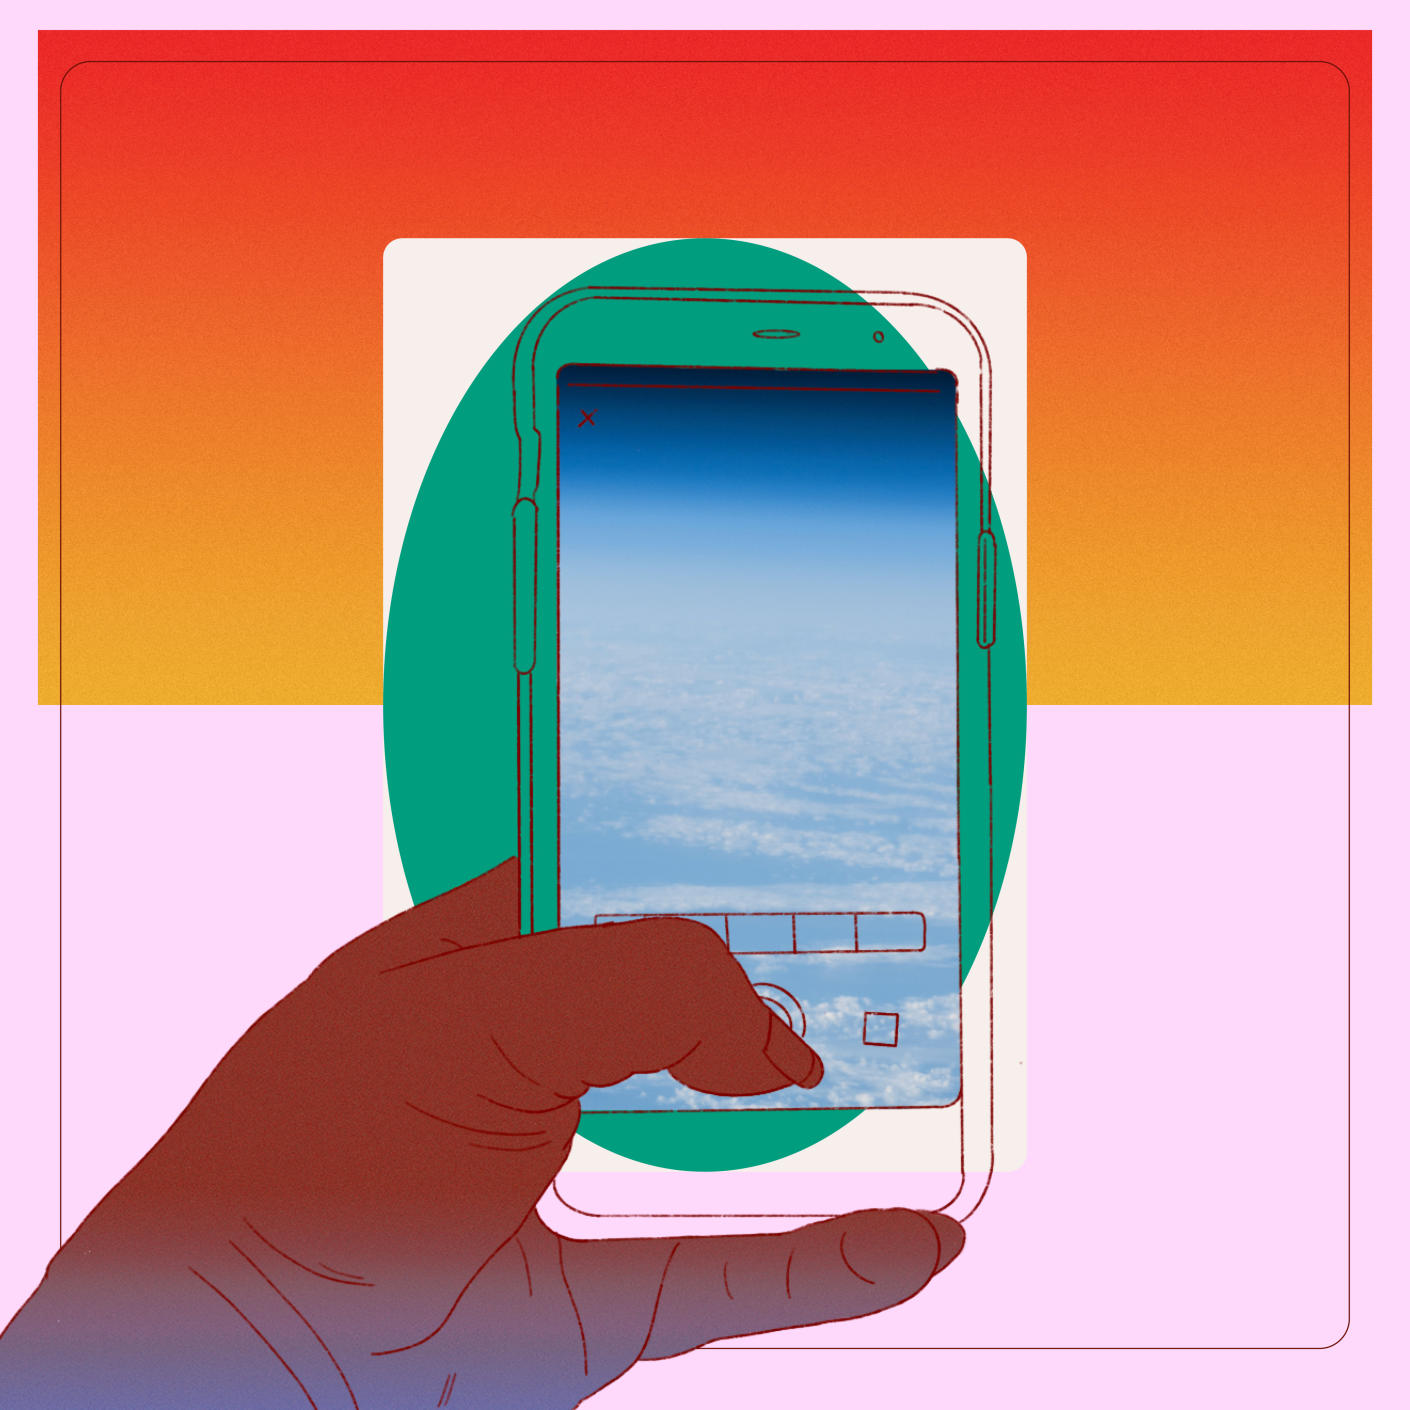 An illustration of a hand holding a cell phone taking a focused picture of the sky as would be seen from the window of an airplane with an orange and pink background.